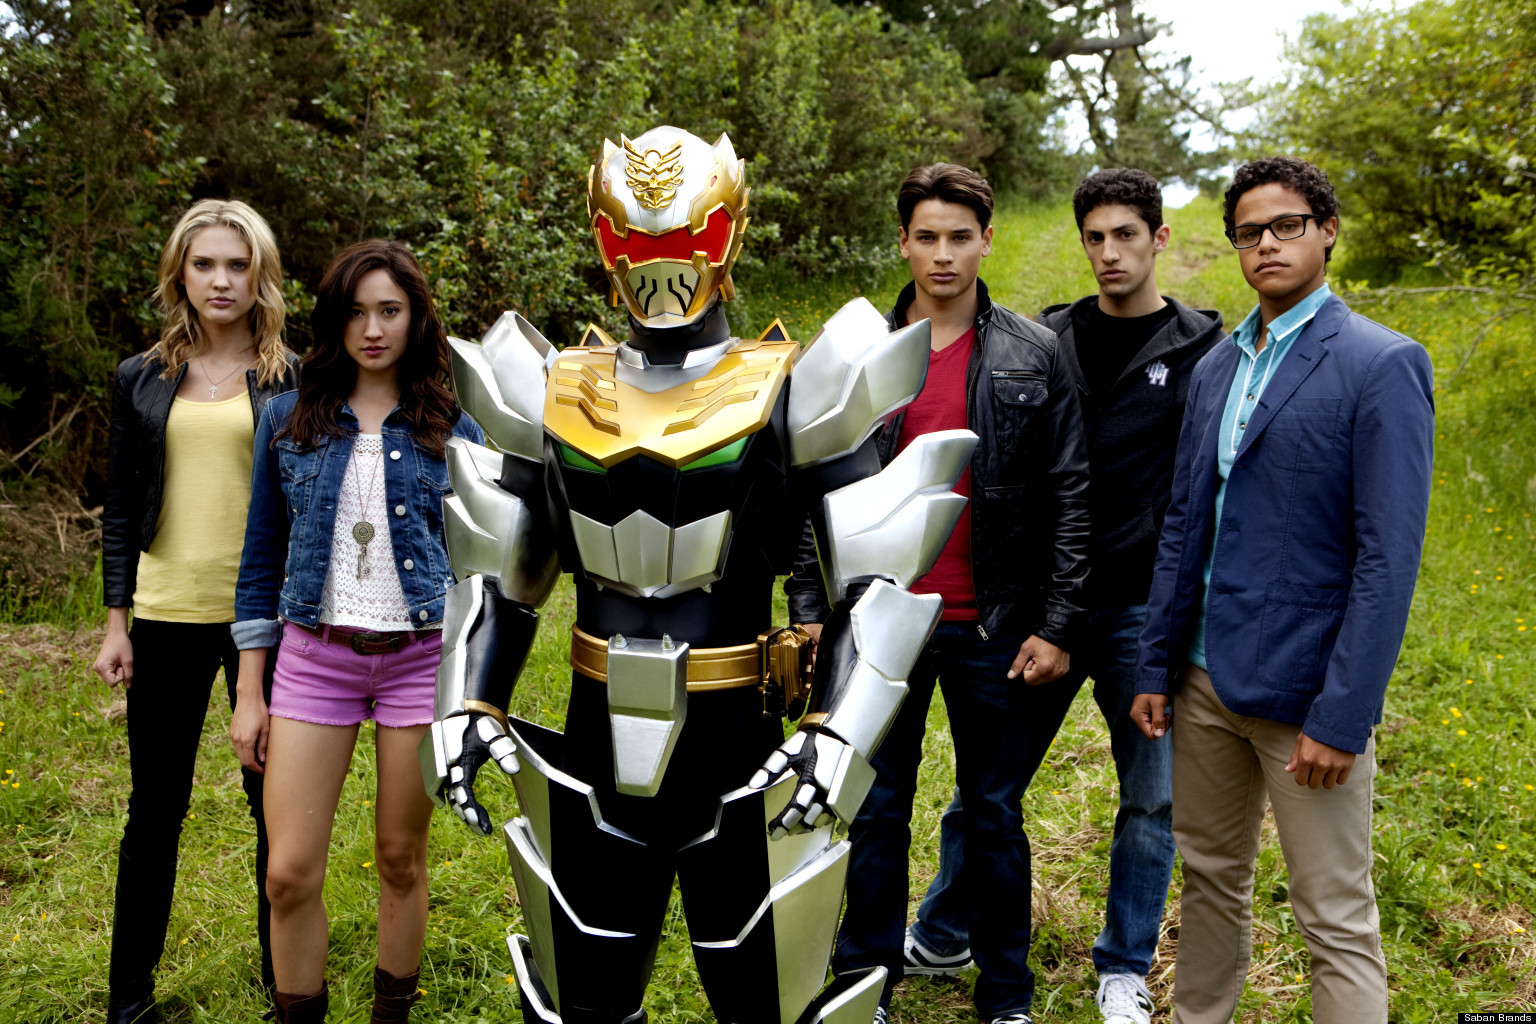 'Power Rangers Megaforce': Trailer Reveals New Rangers ...